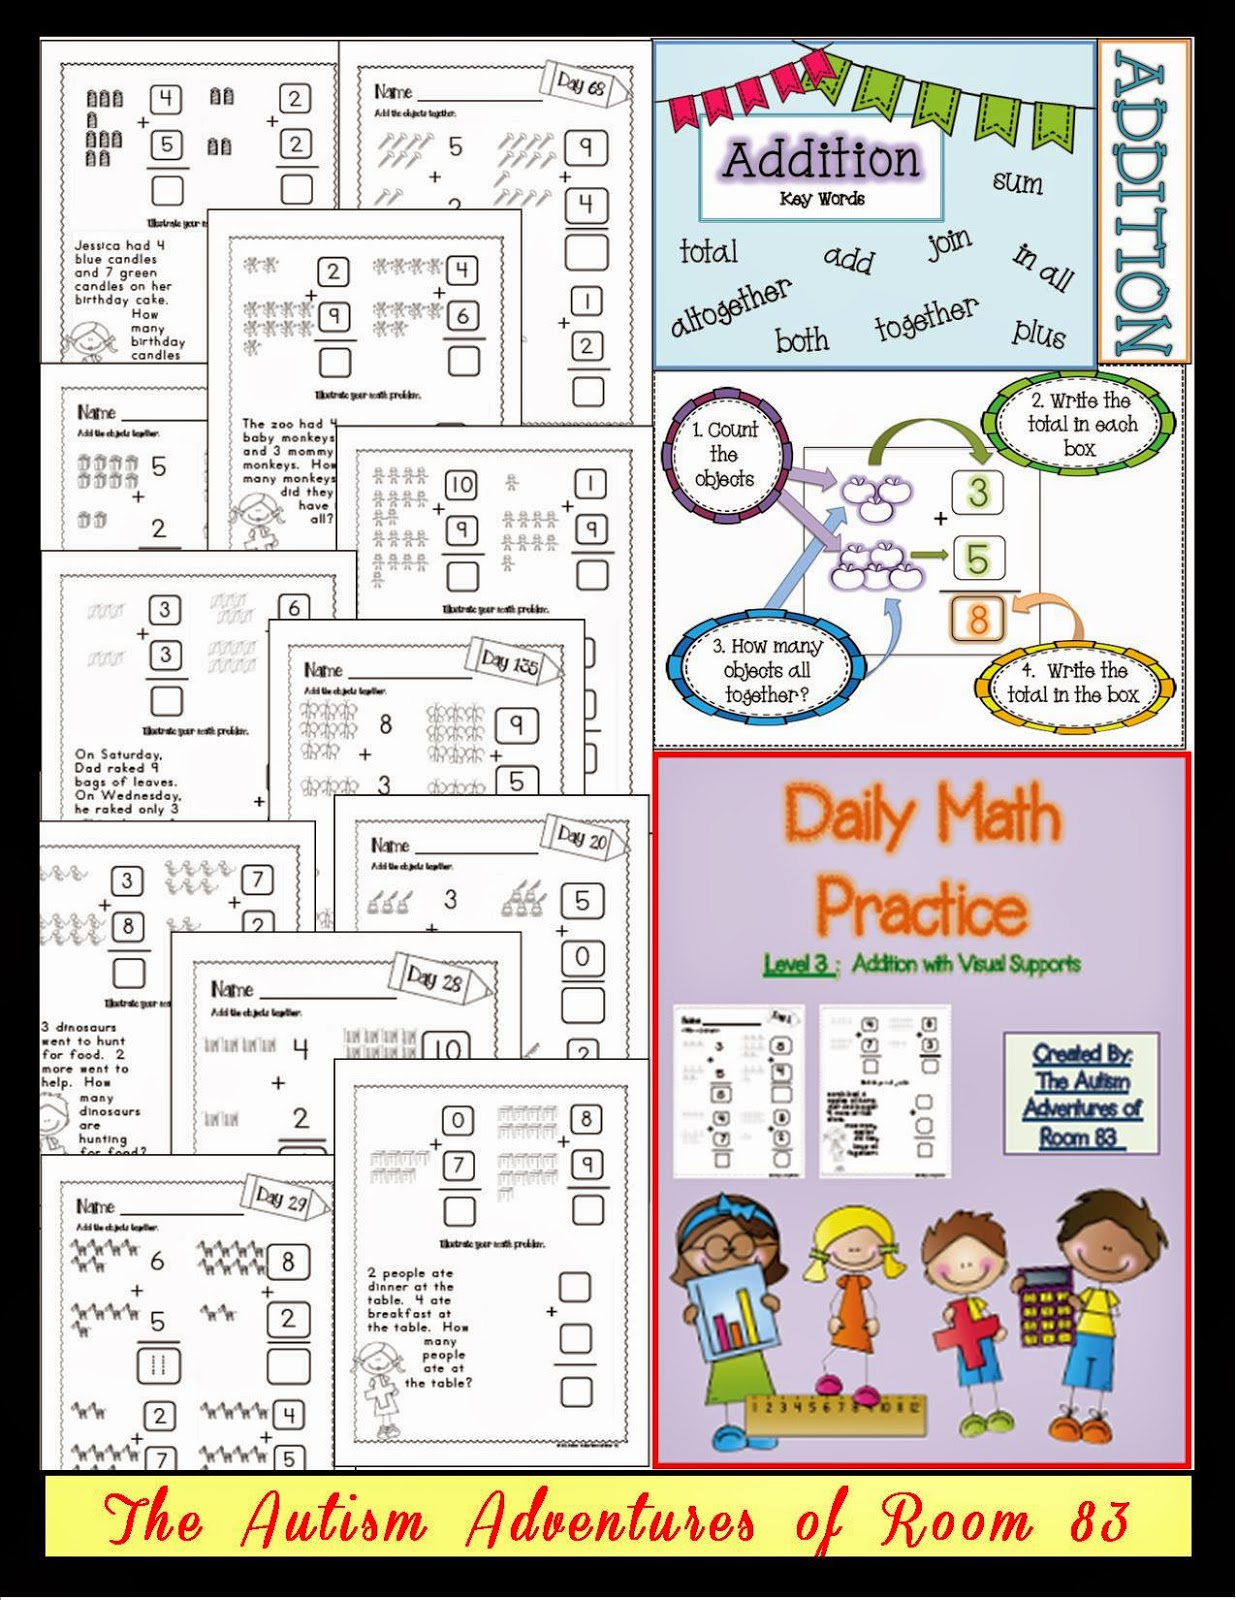 Daily Math Practice Level 3 Addition With Visuals